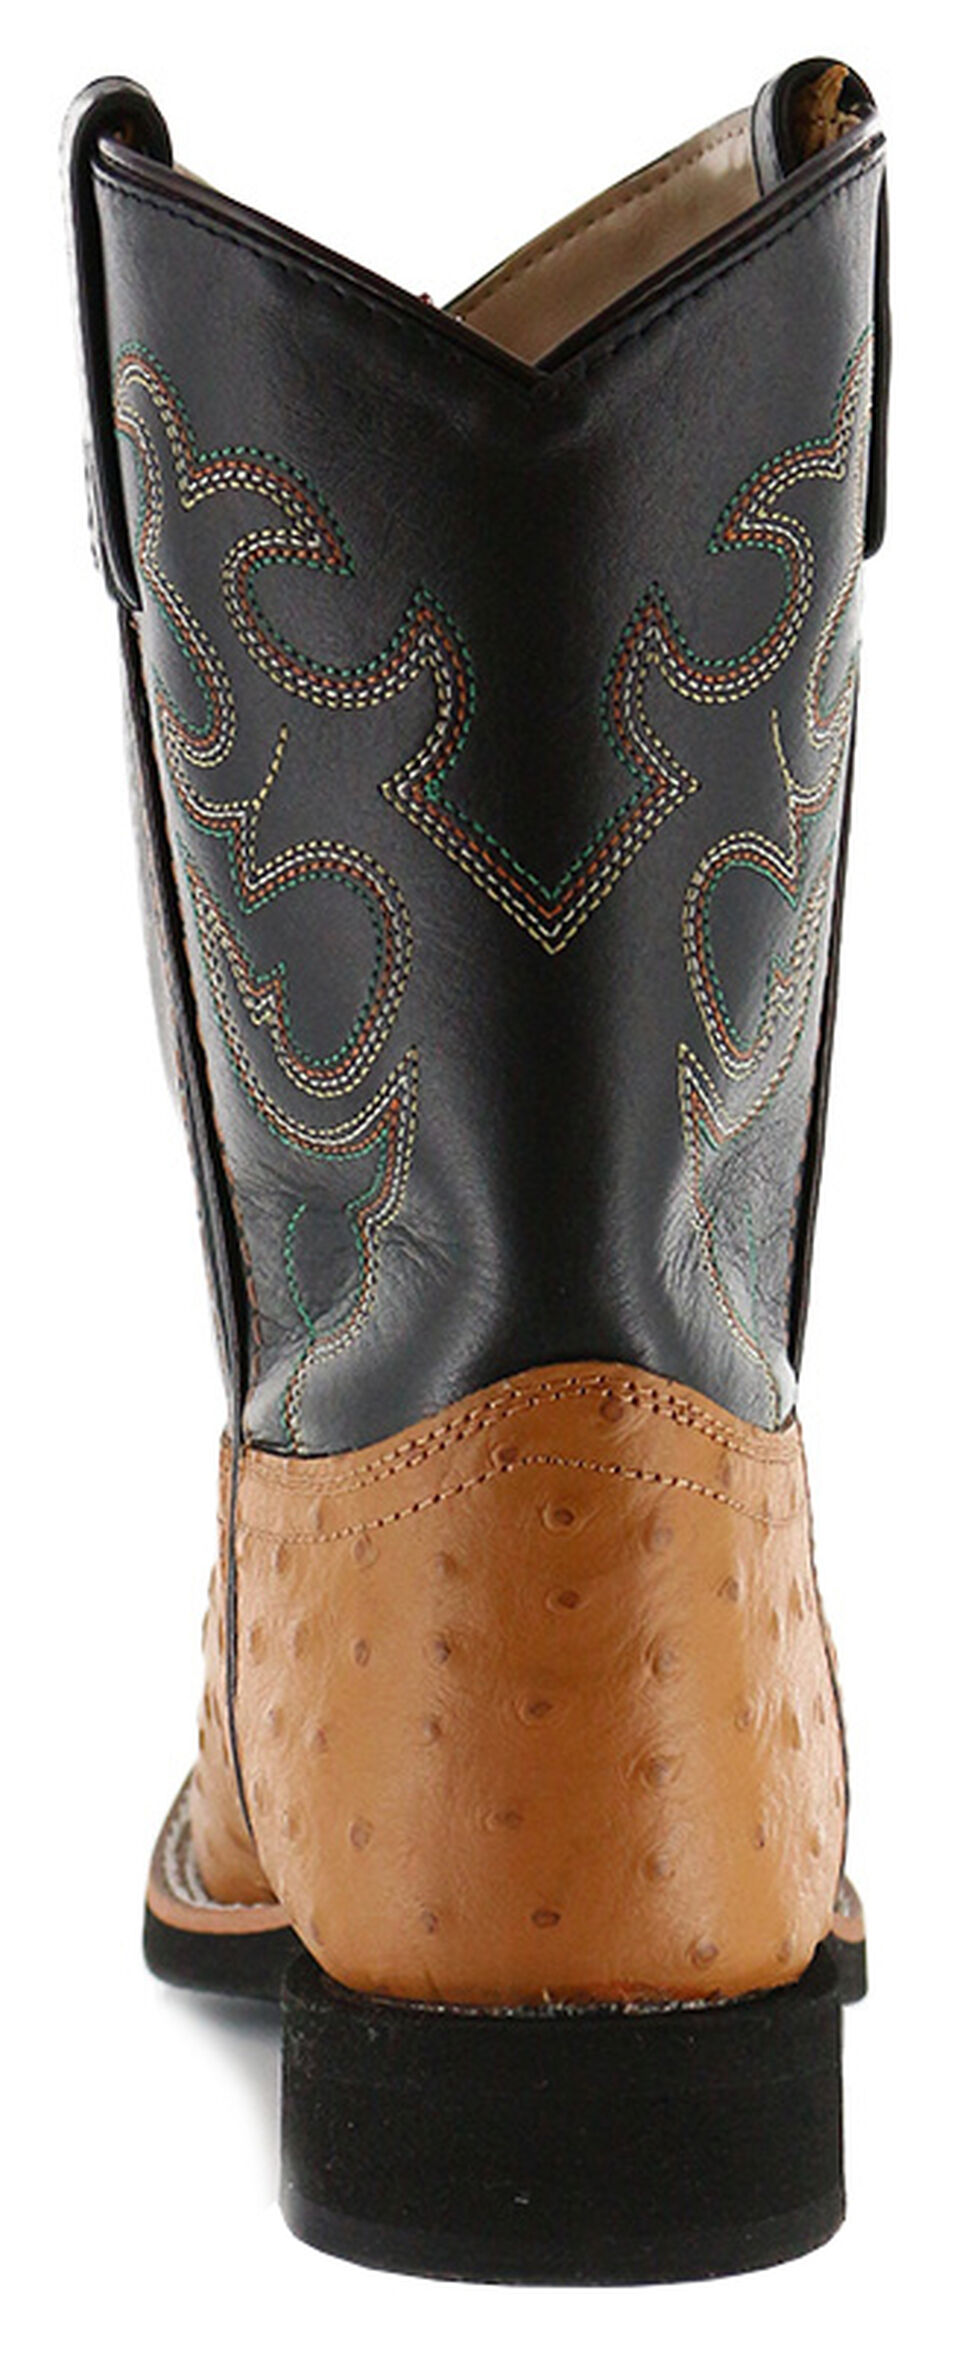 Cody James Youth Boys' Ostrich Print Western Boots - Round Toe, Cognac, hi-res